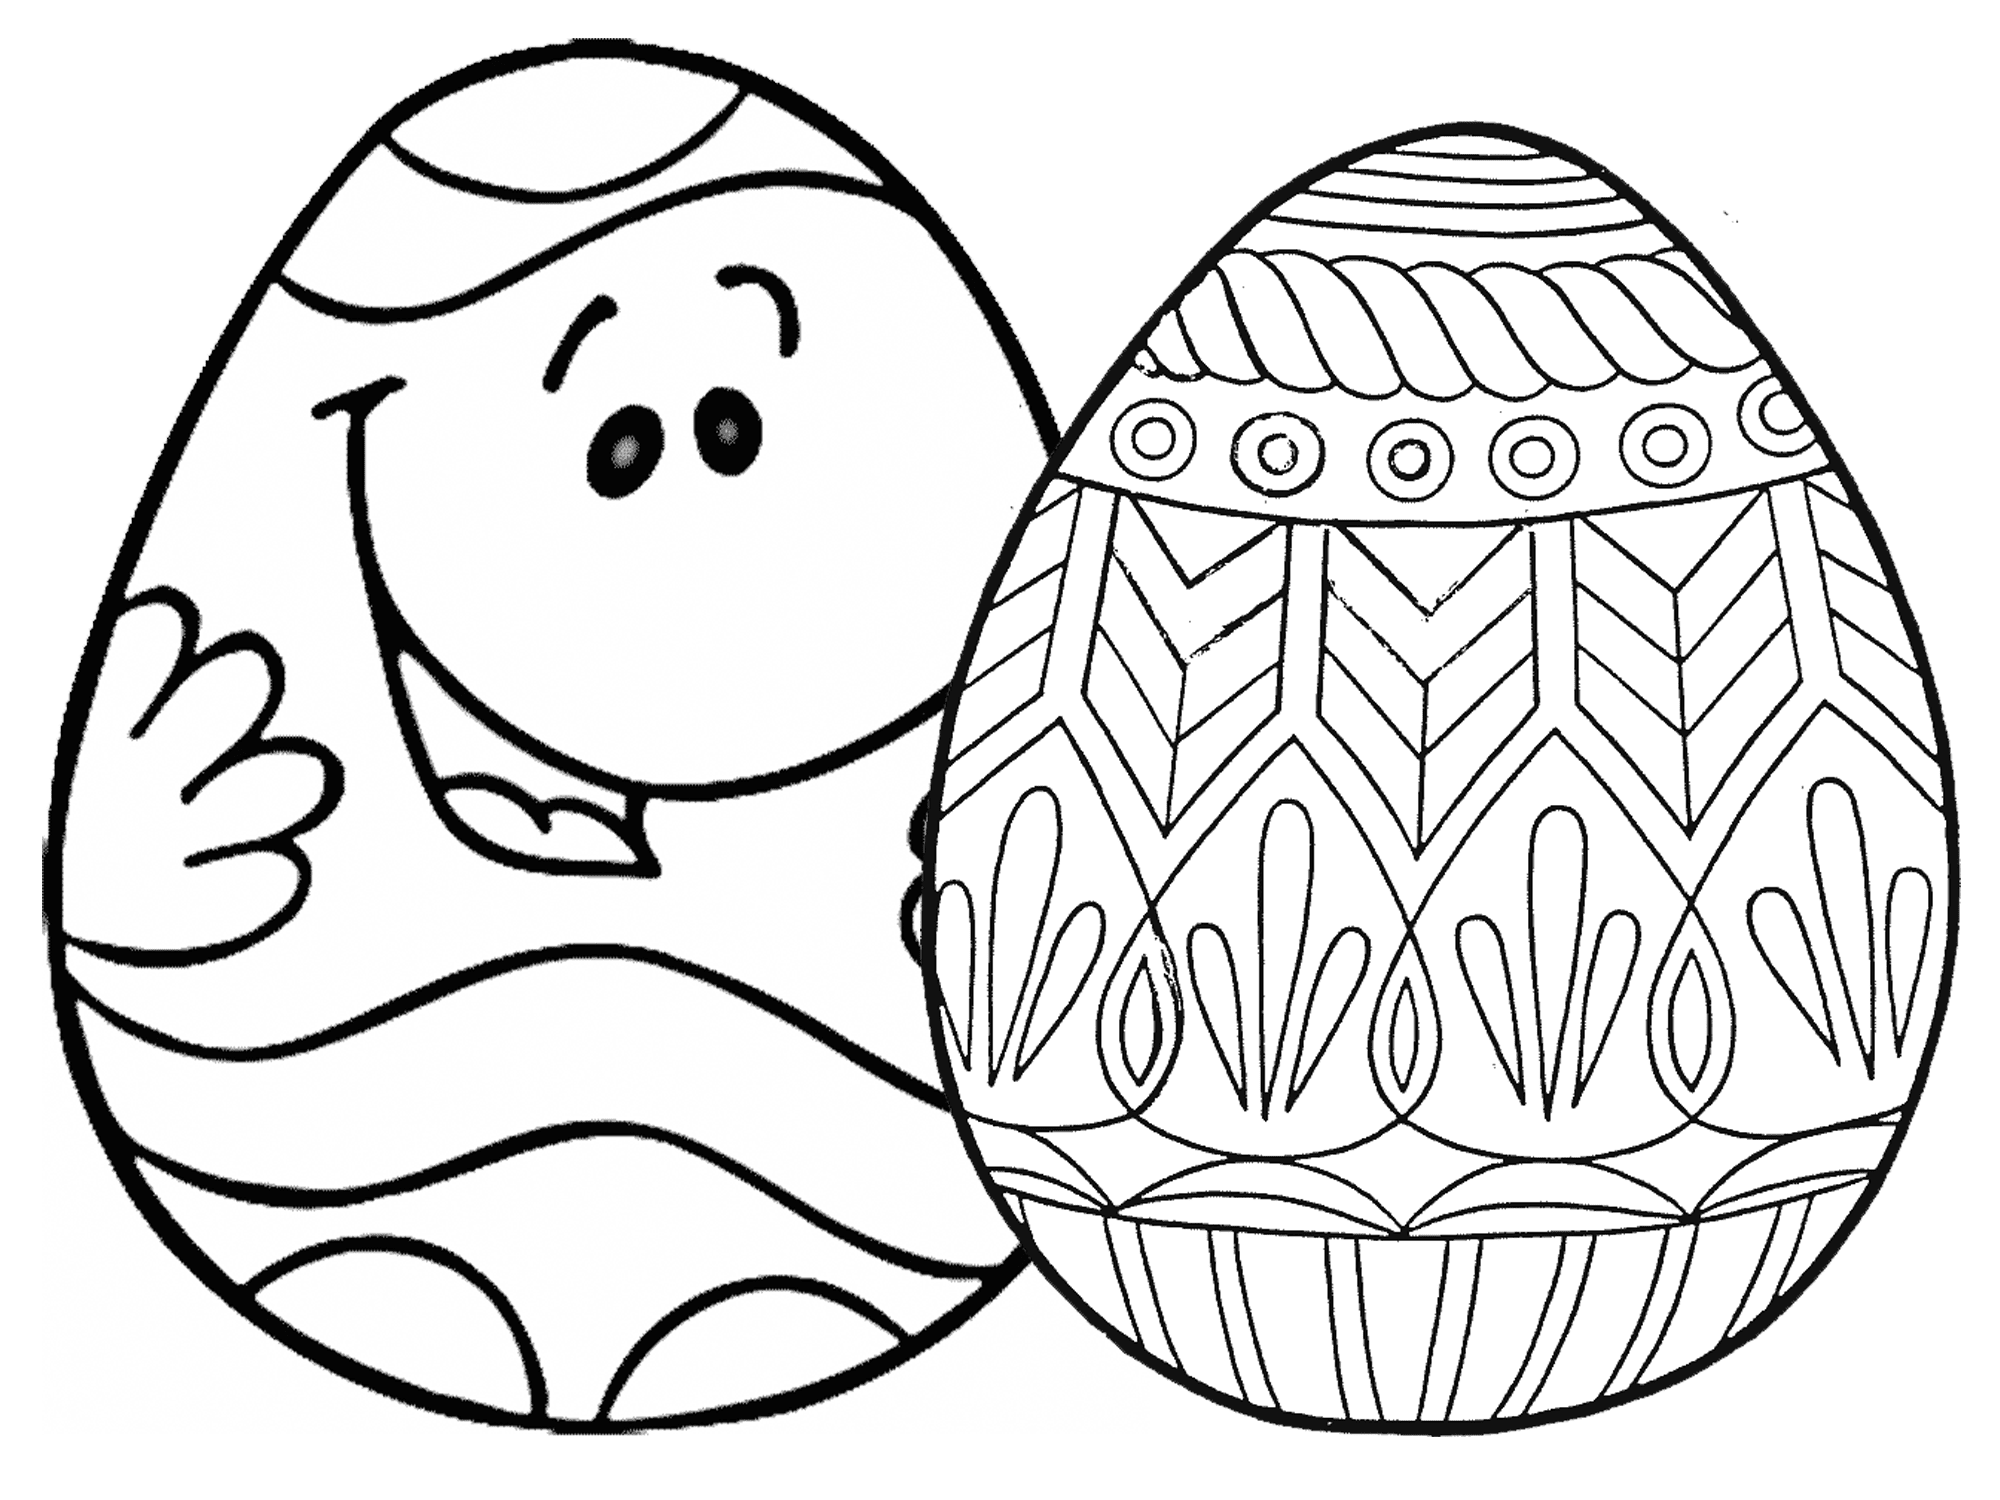 easter egg coloring pictures easter pages to color coloring pages pictures egg coloring easter